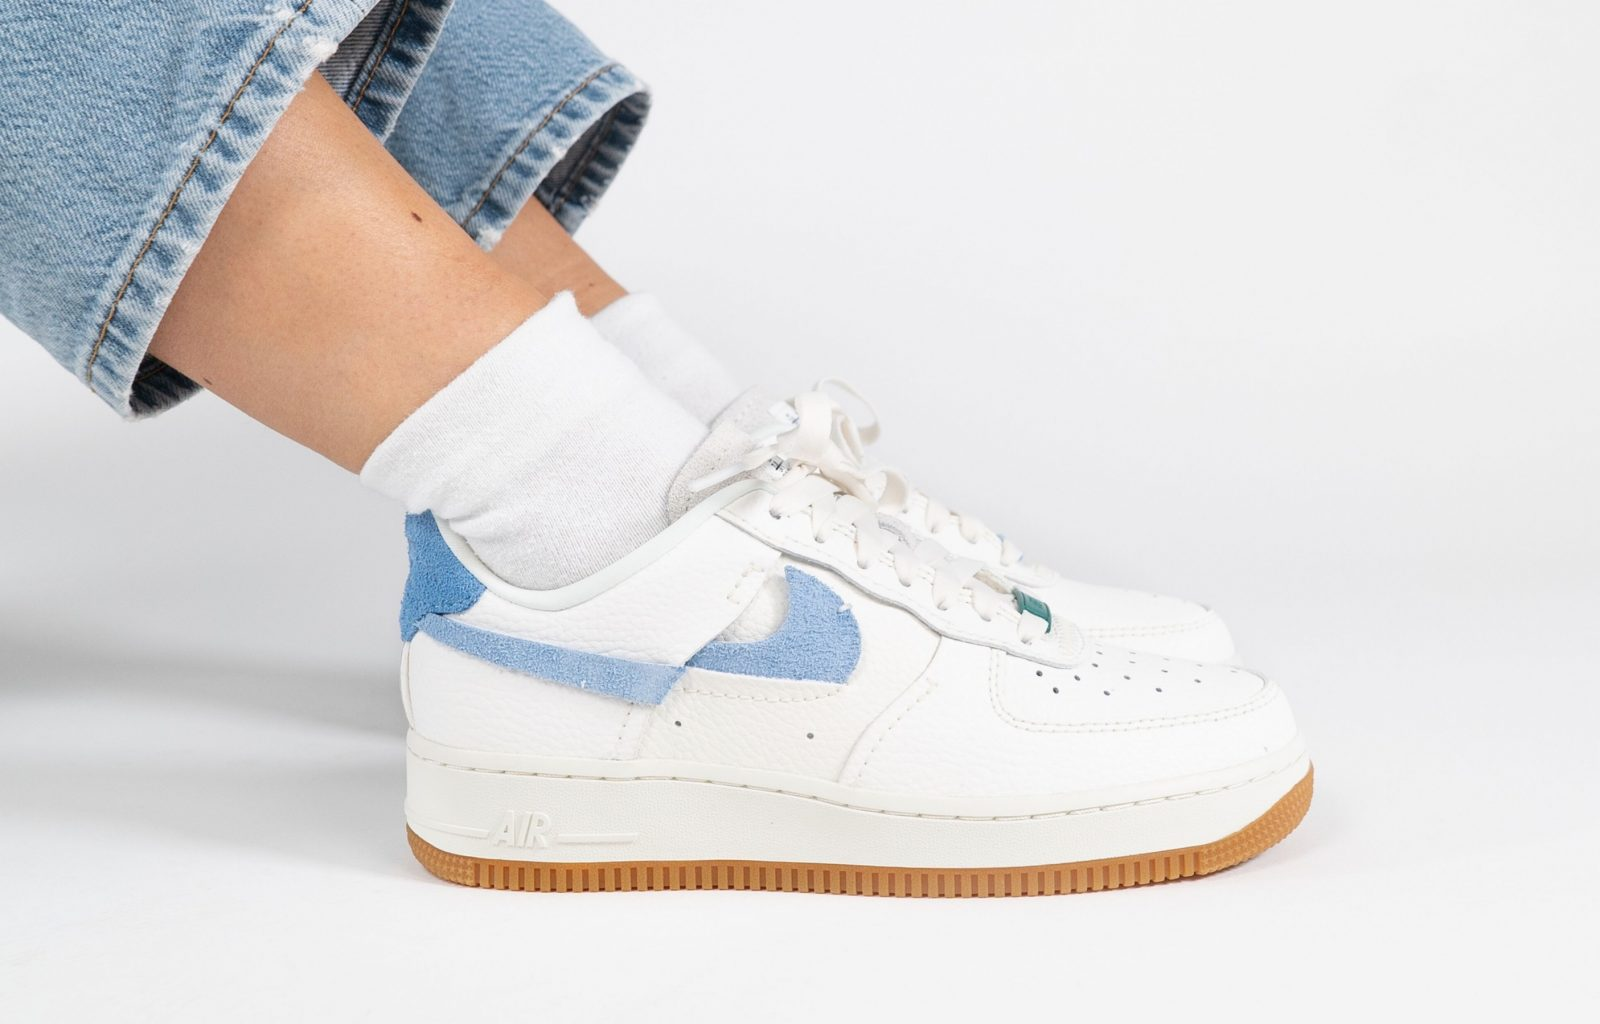 00011: Nike Air Force 1 Vandalized –